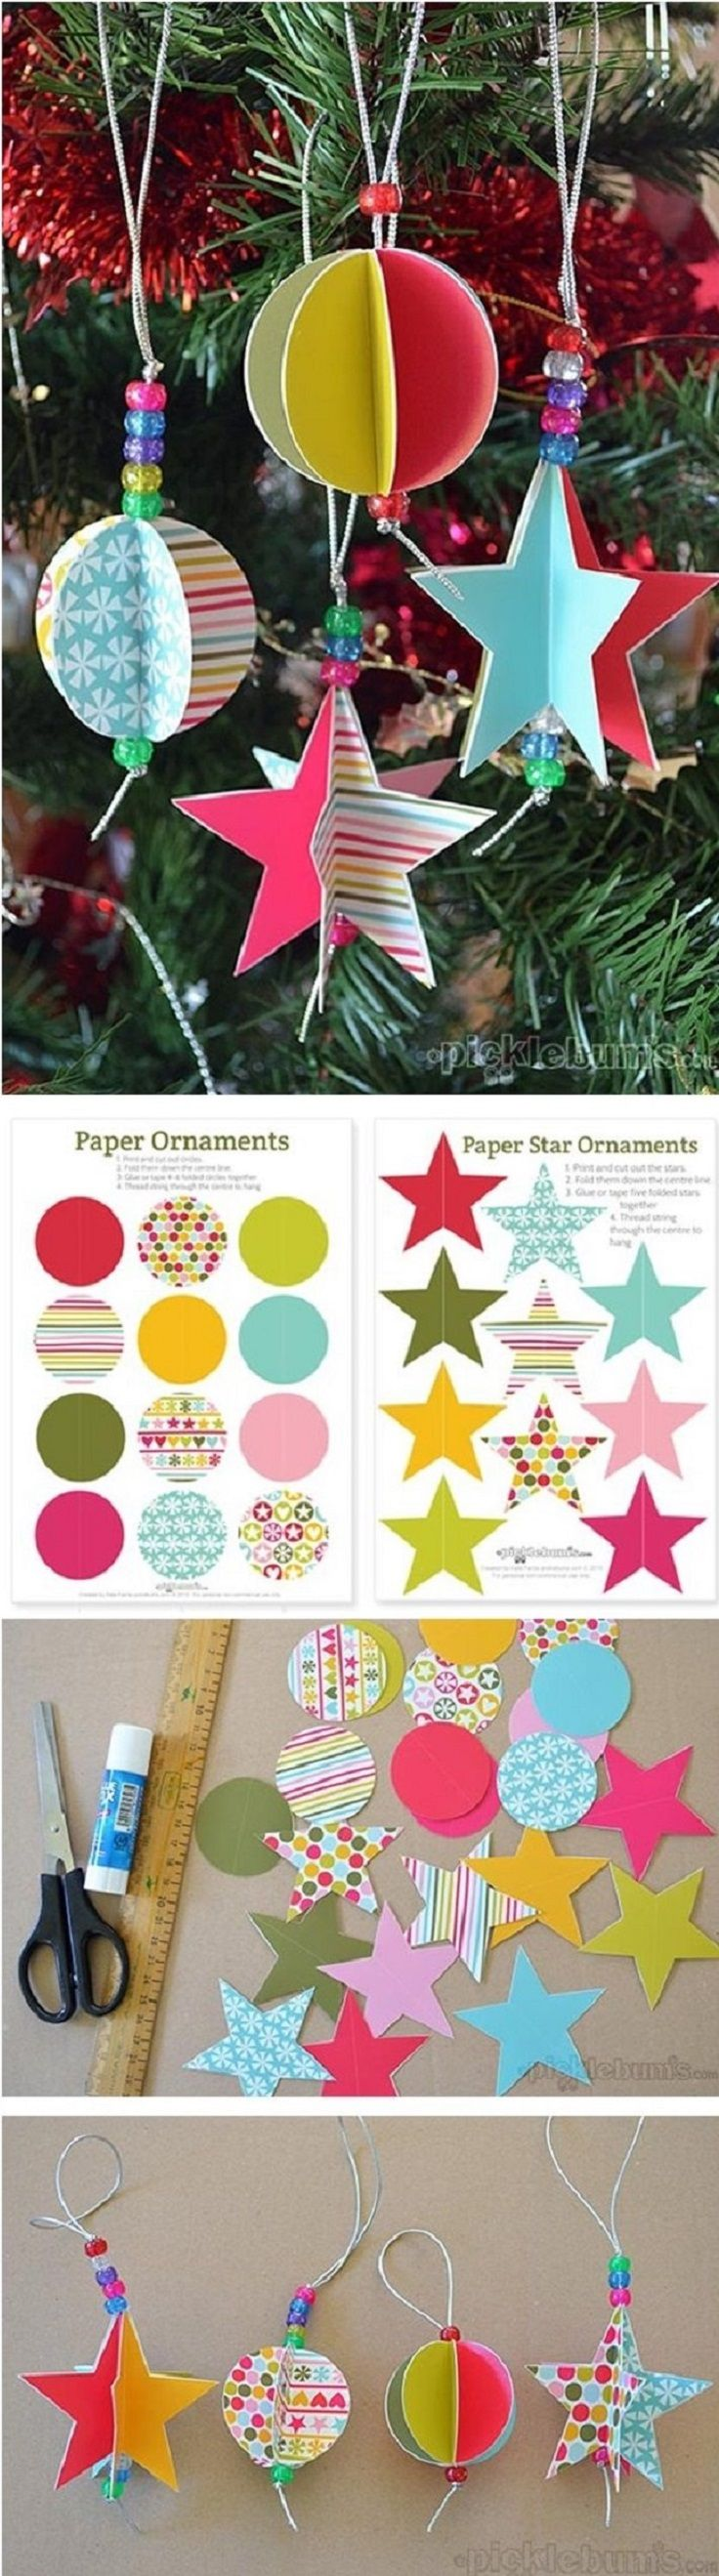 Amp occasions gt christmas alert occasions gt christmas decorations - Star And Circle Paper Ornaments For Christmas 16 Winter Wonderland Diy Paper Decorations